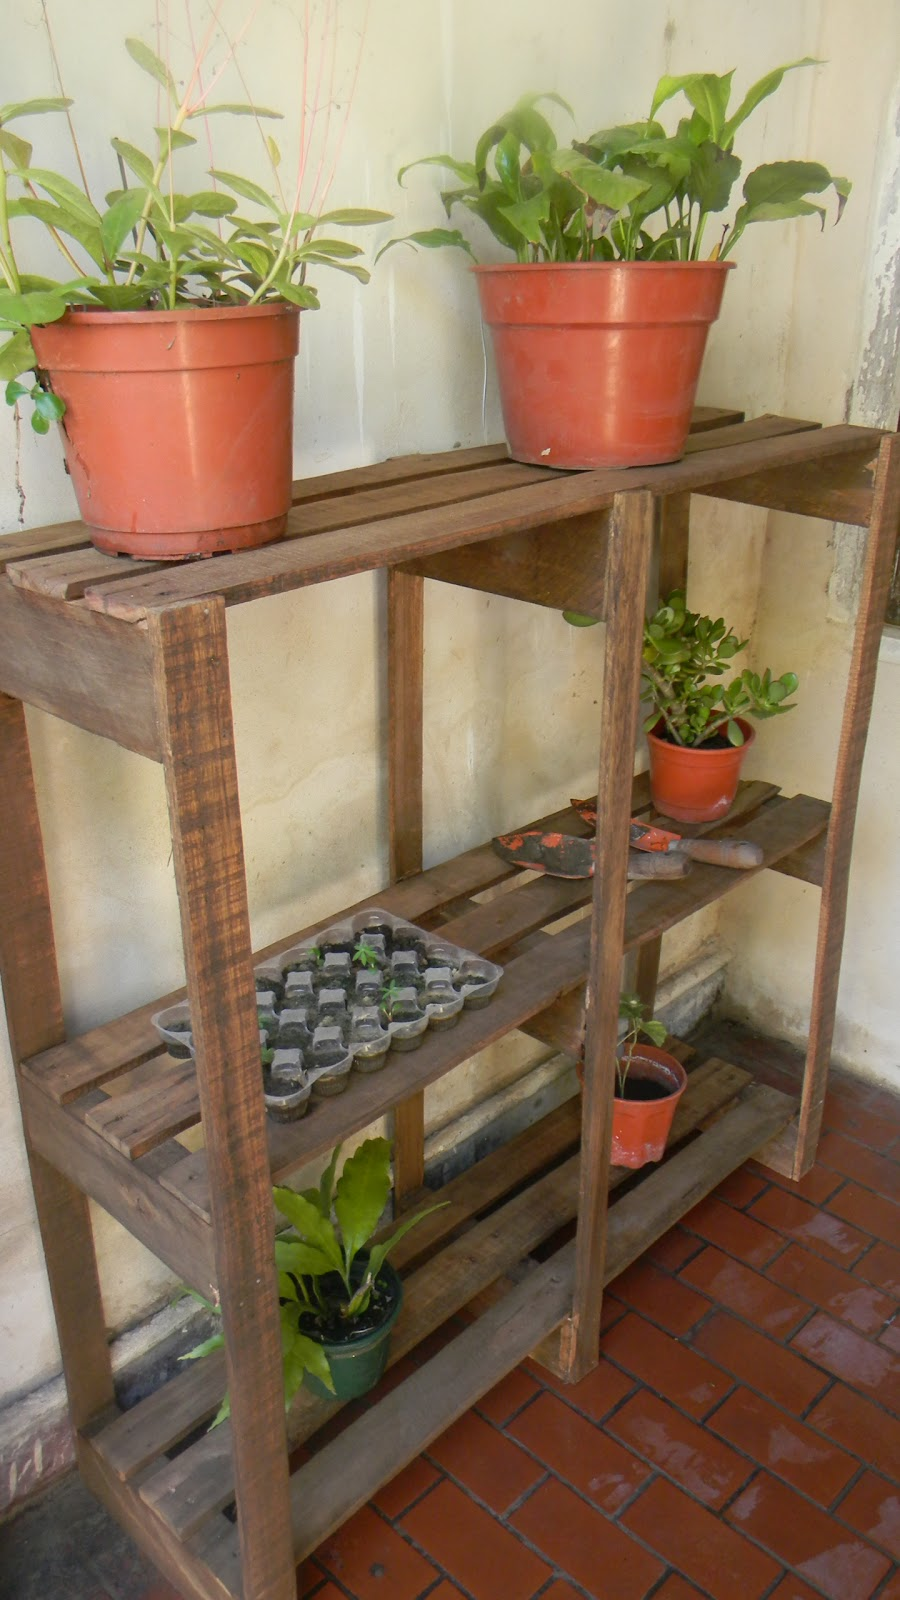 Muebles reciclados casagrande estanter a para plantas de for Estanteria jardin plantas